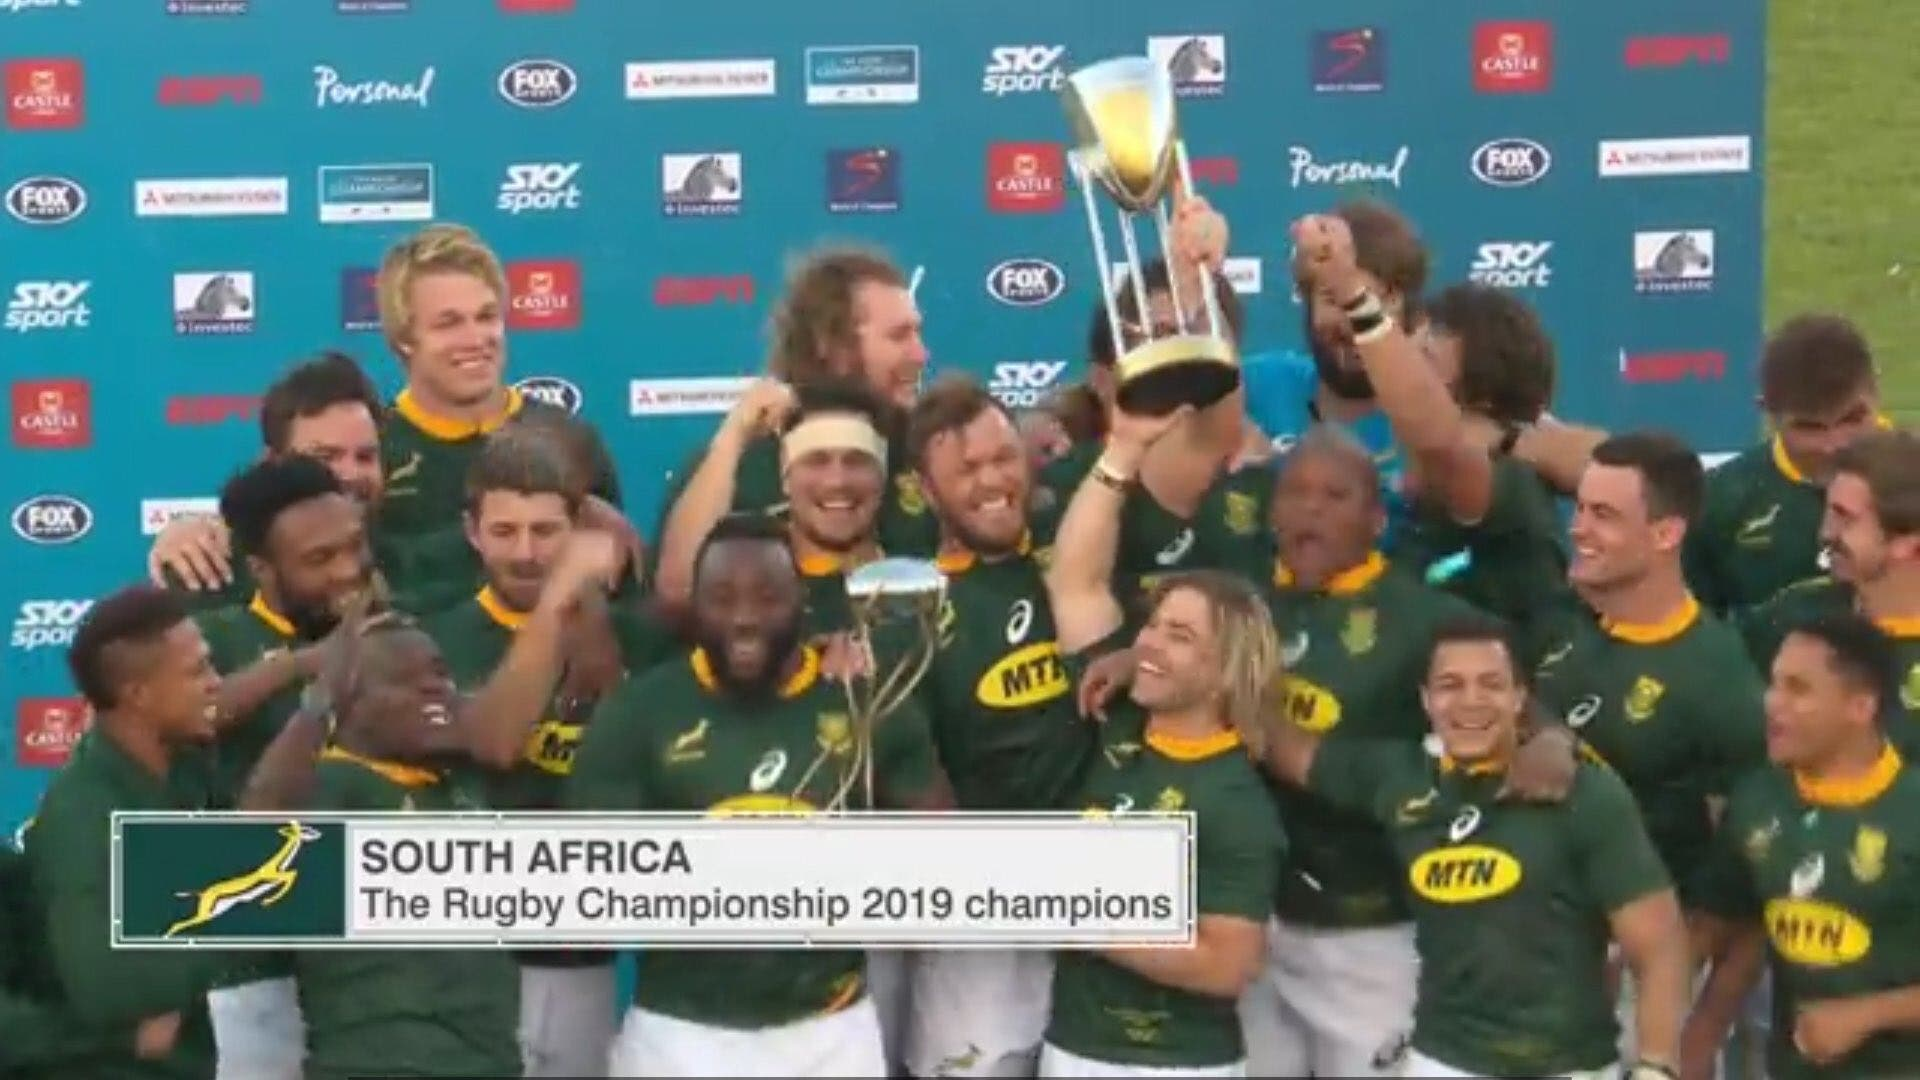 WATCH Springboks Celebrate as South Africa WINS The Rugby